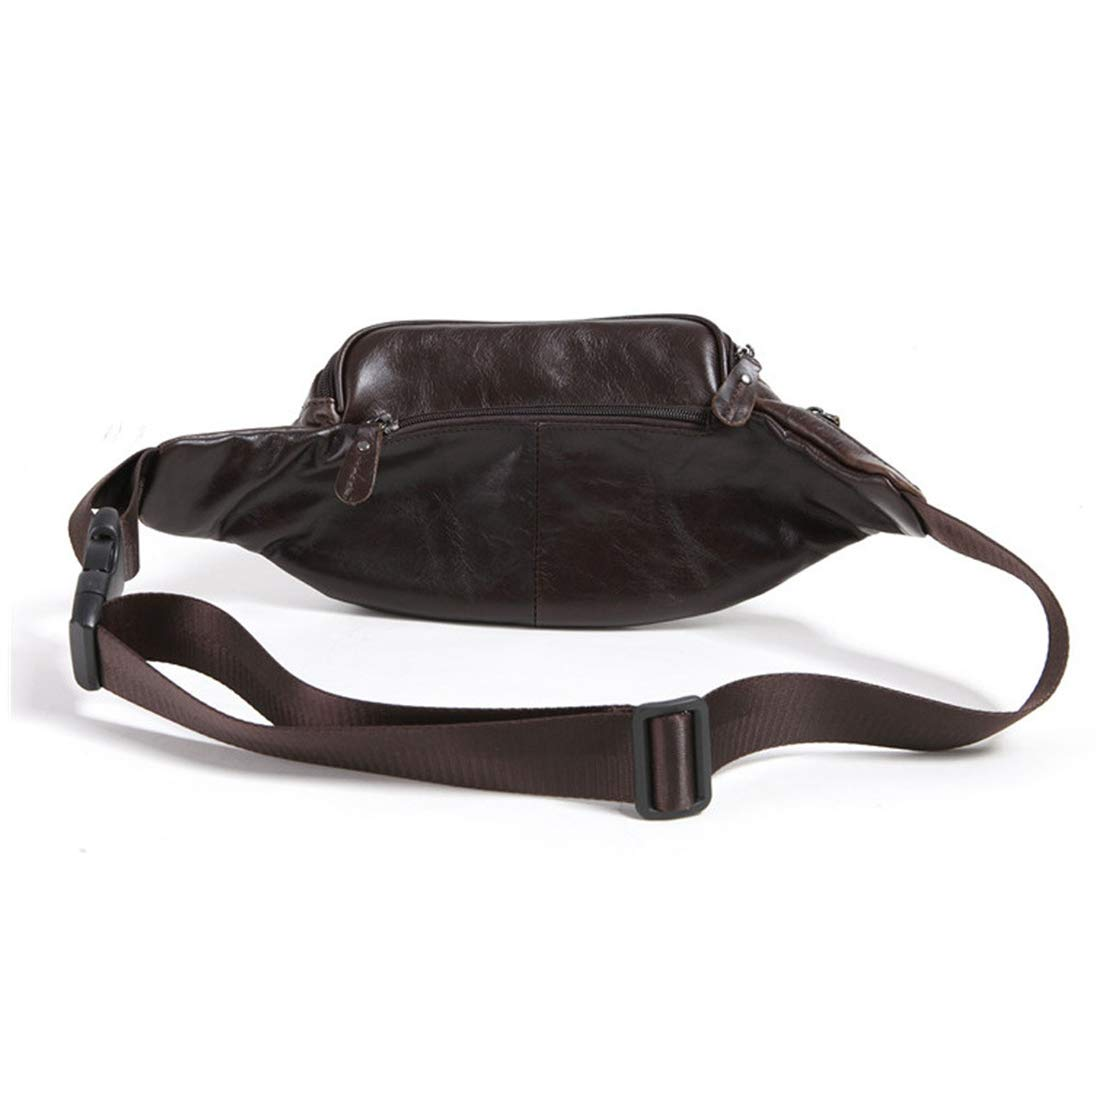 Color : Coffee Color RABILTY Leather Pack Black Waist Bag Travel Hiking Hip Bum Purse